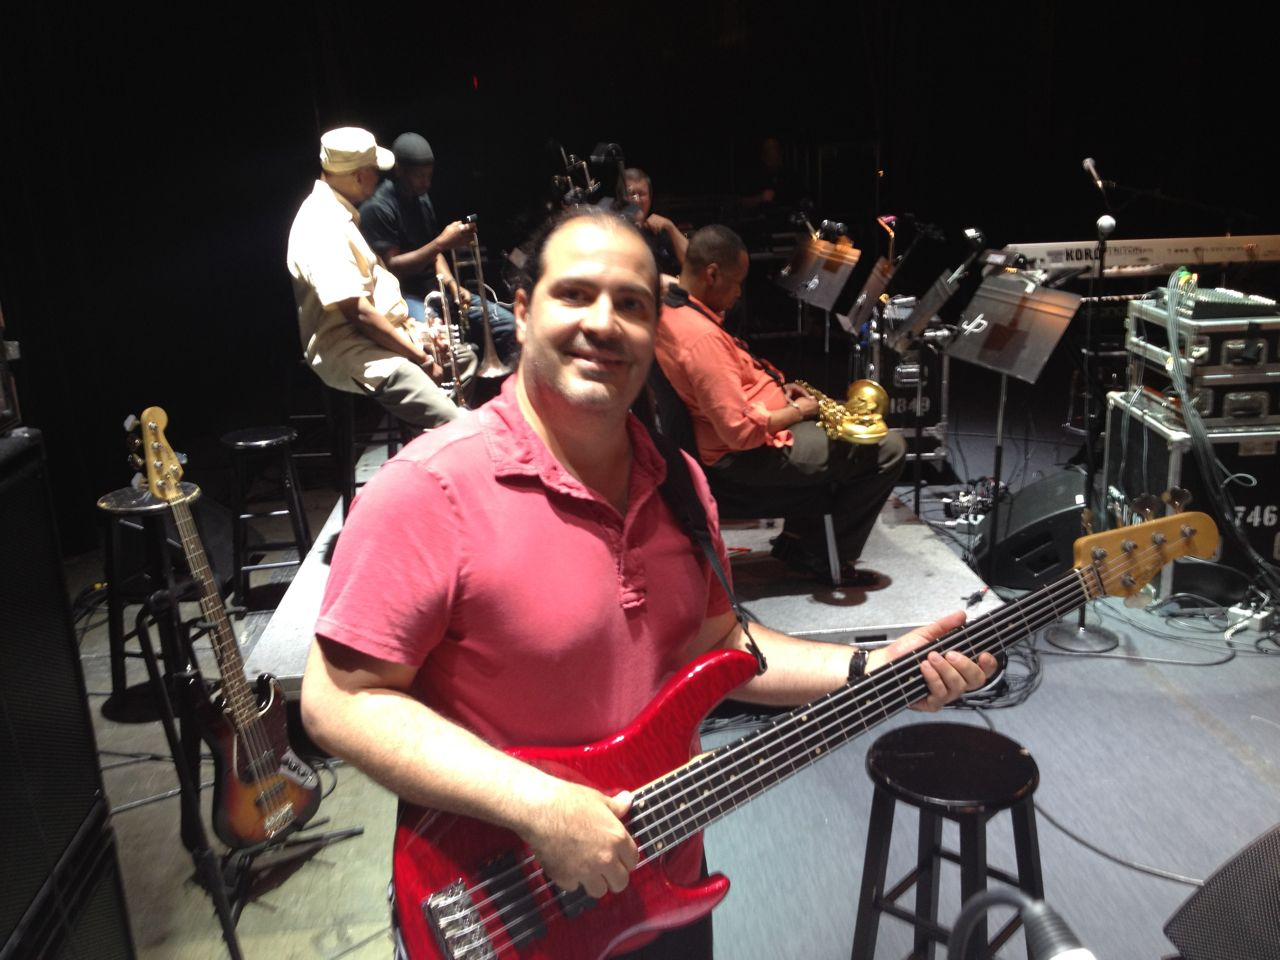 Marco Accattatis - PHOTO GALLERY - bassist, instructor, musicologist